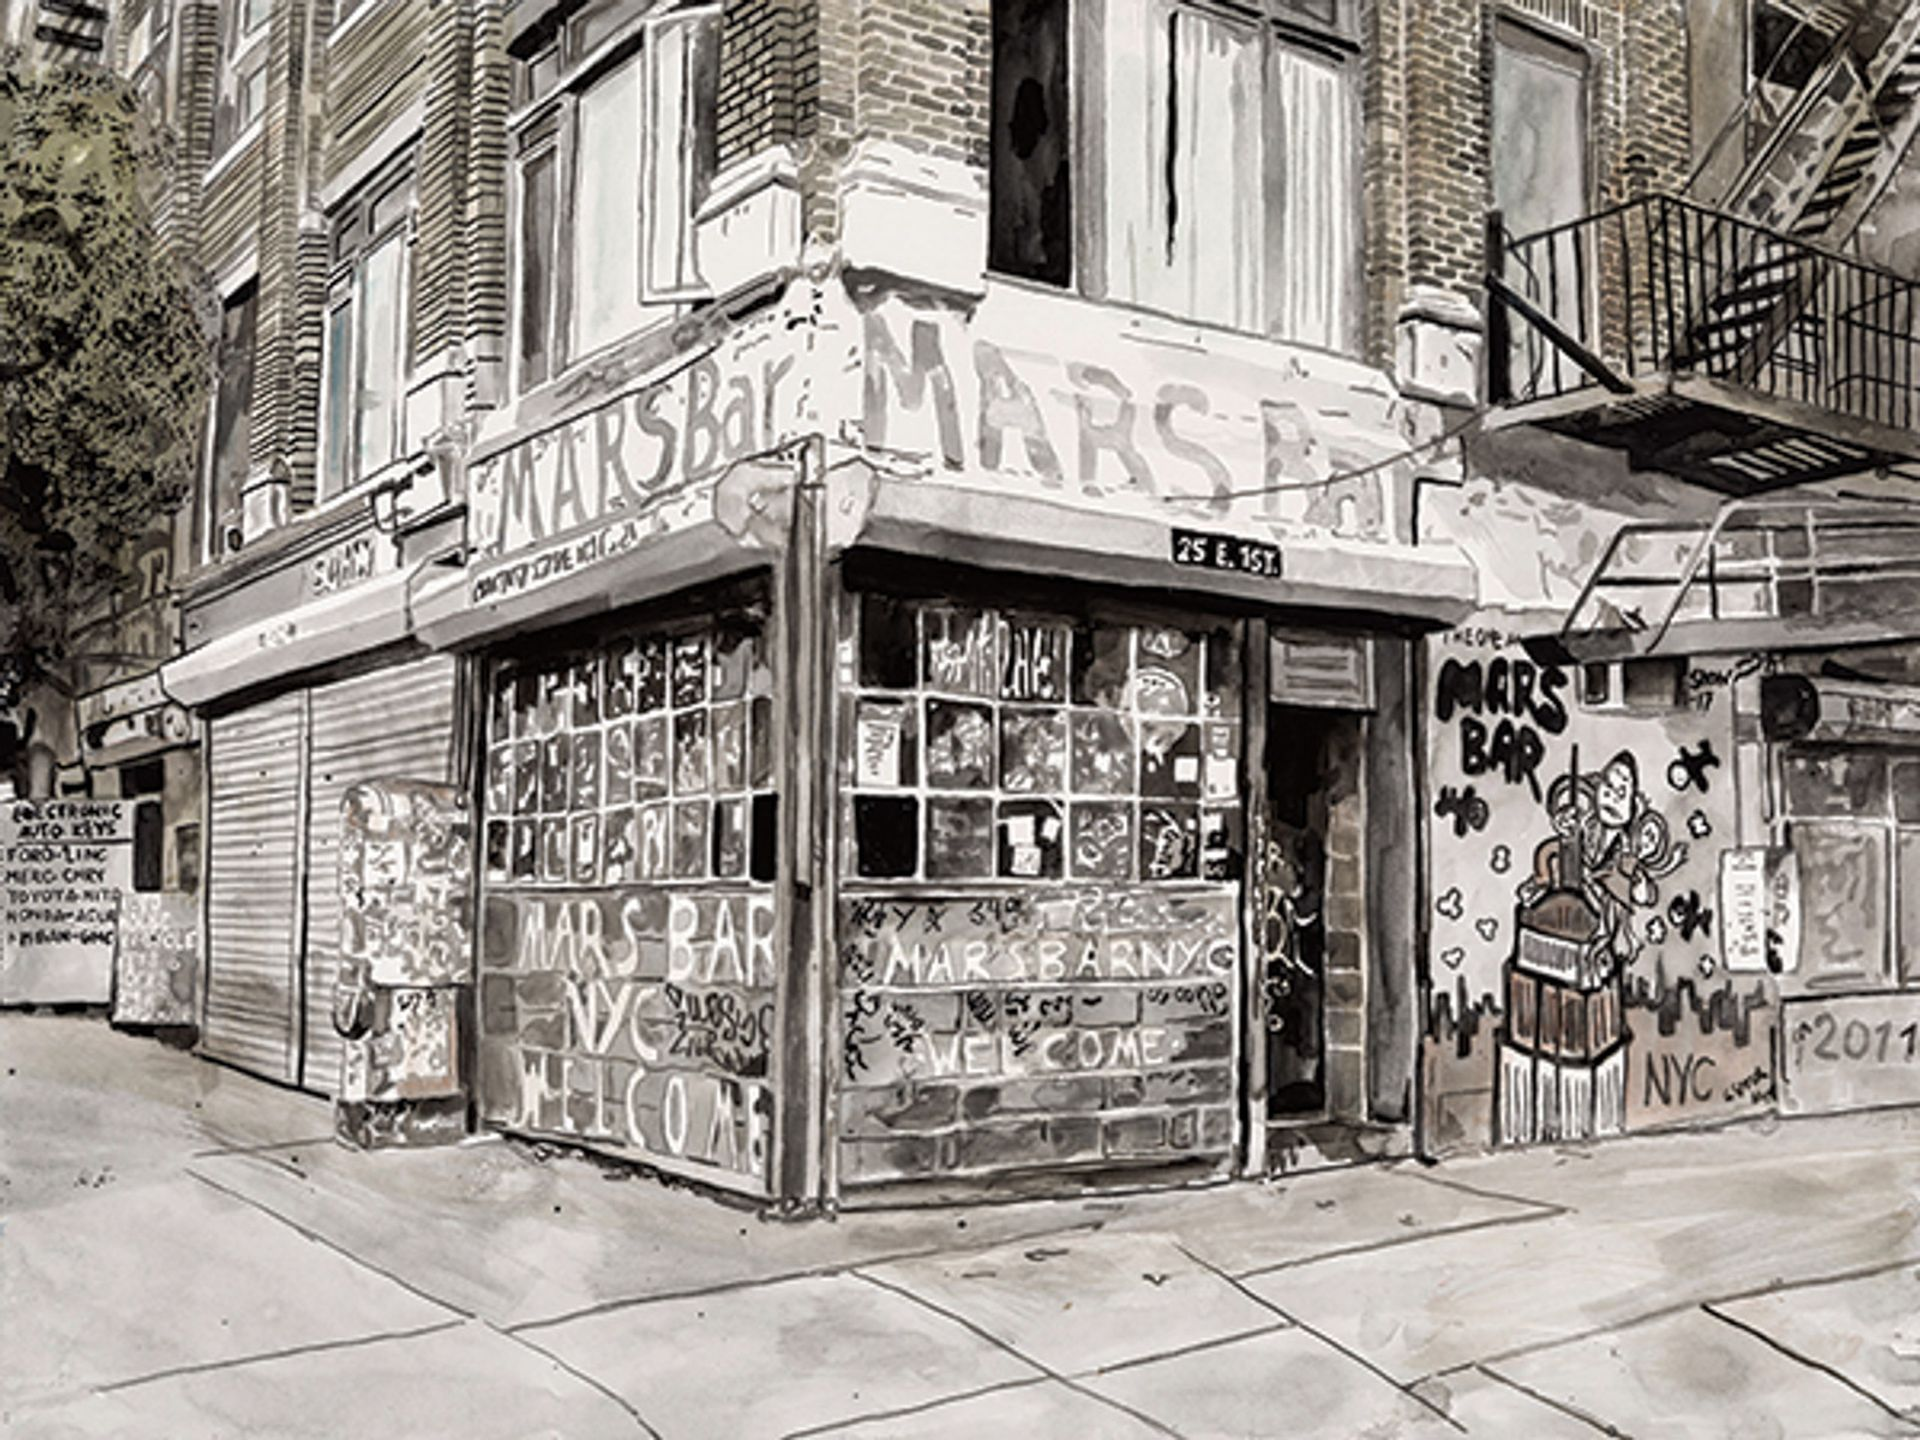 Gone but not forgotten: Harvey's Mars Bar recalls the famously gritty New York dive © Etienne Frossard